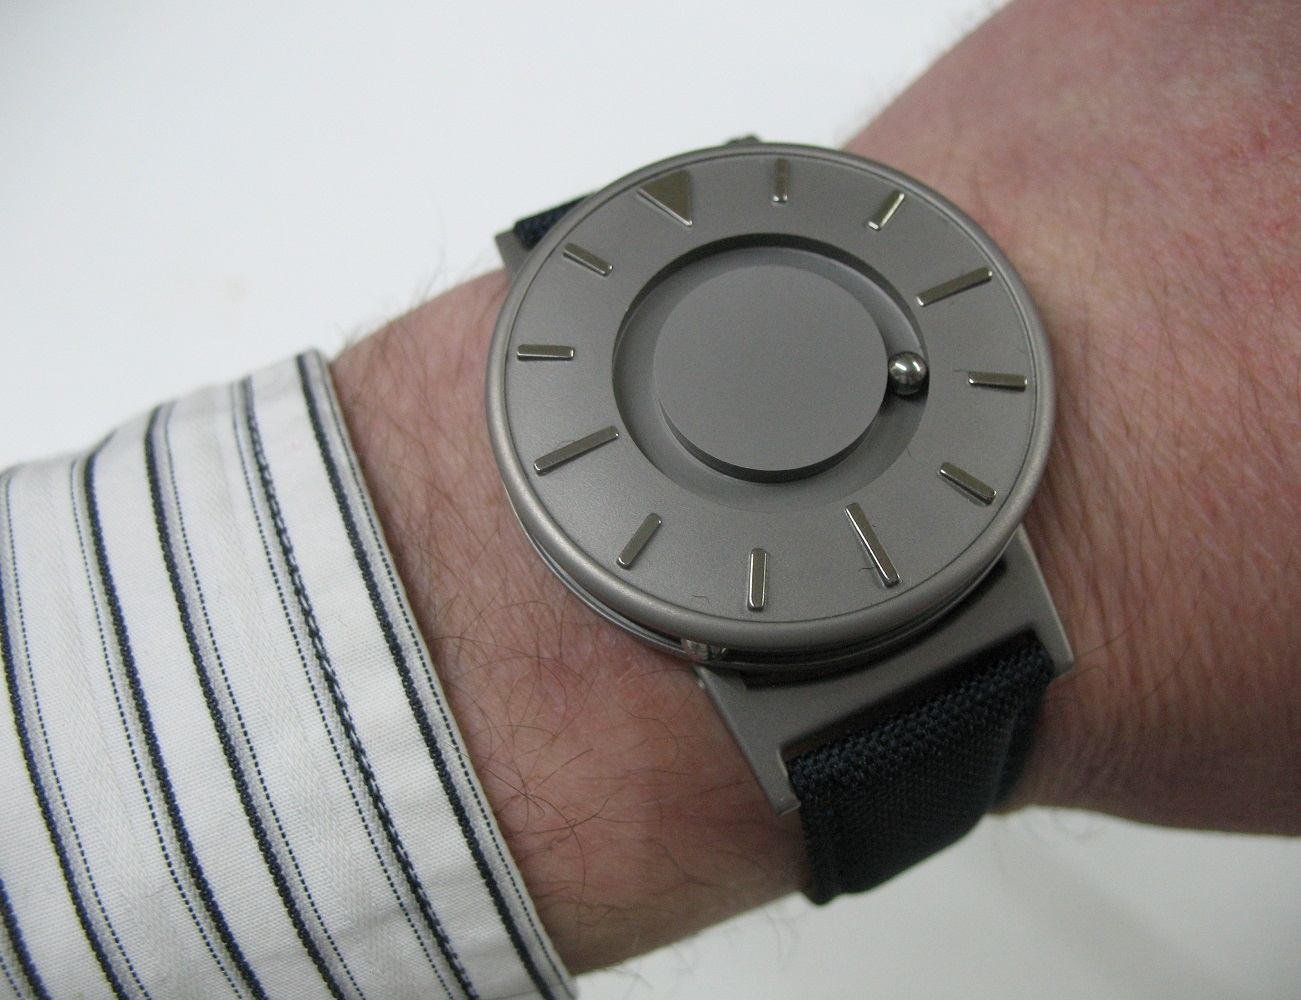 Photo of stylish, accessible watch that works for individuals who are sighted or blind.